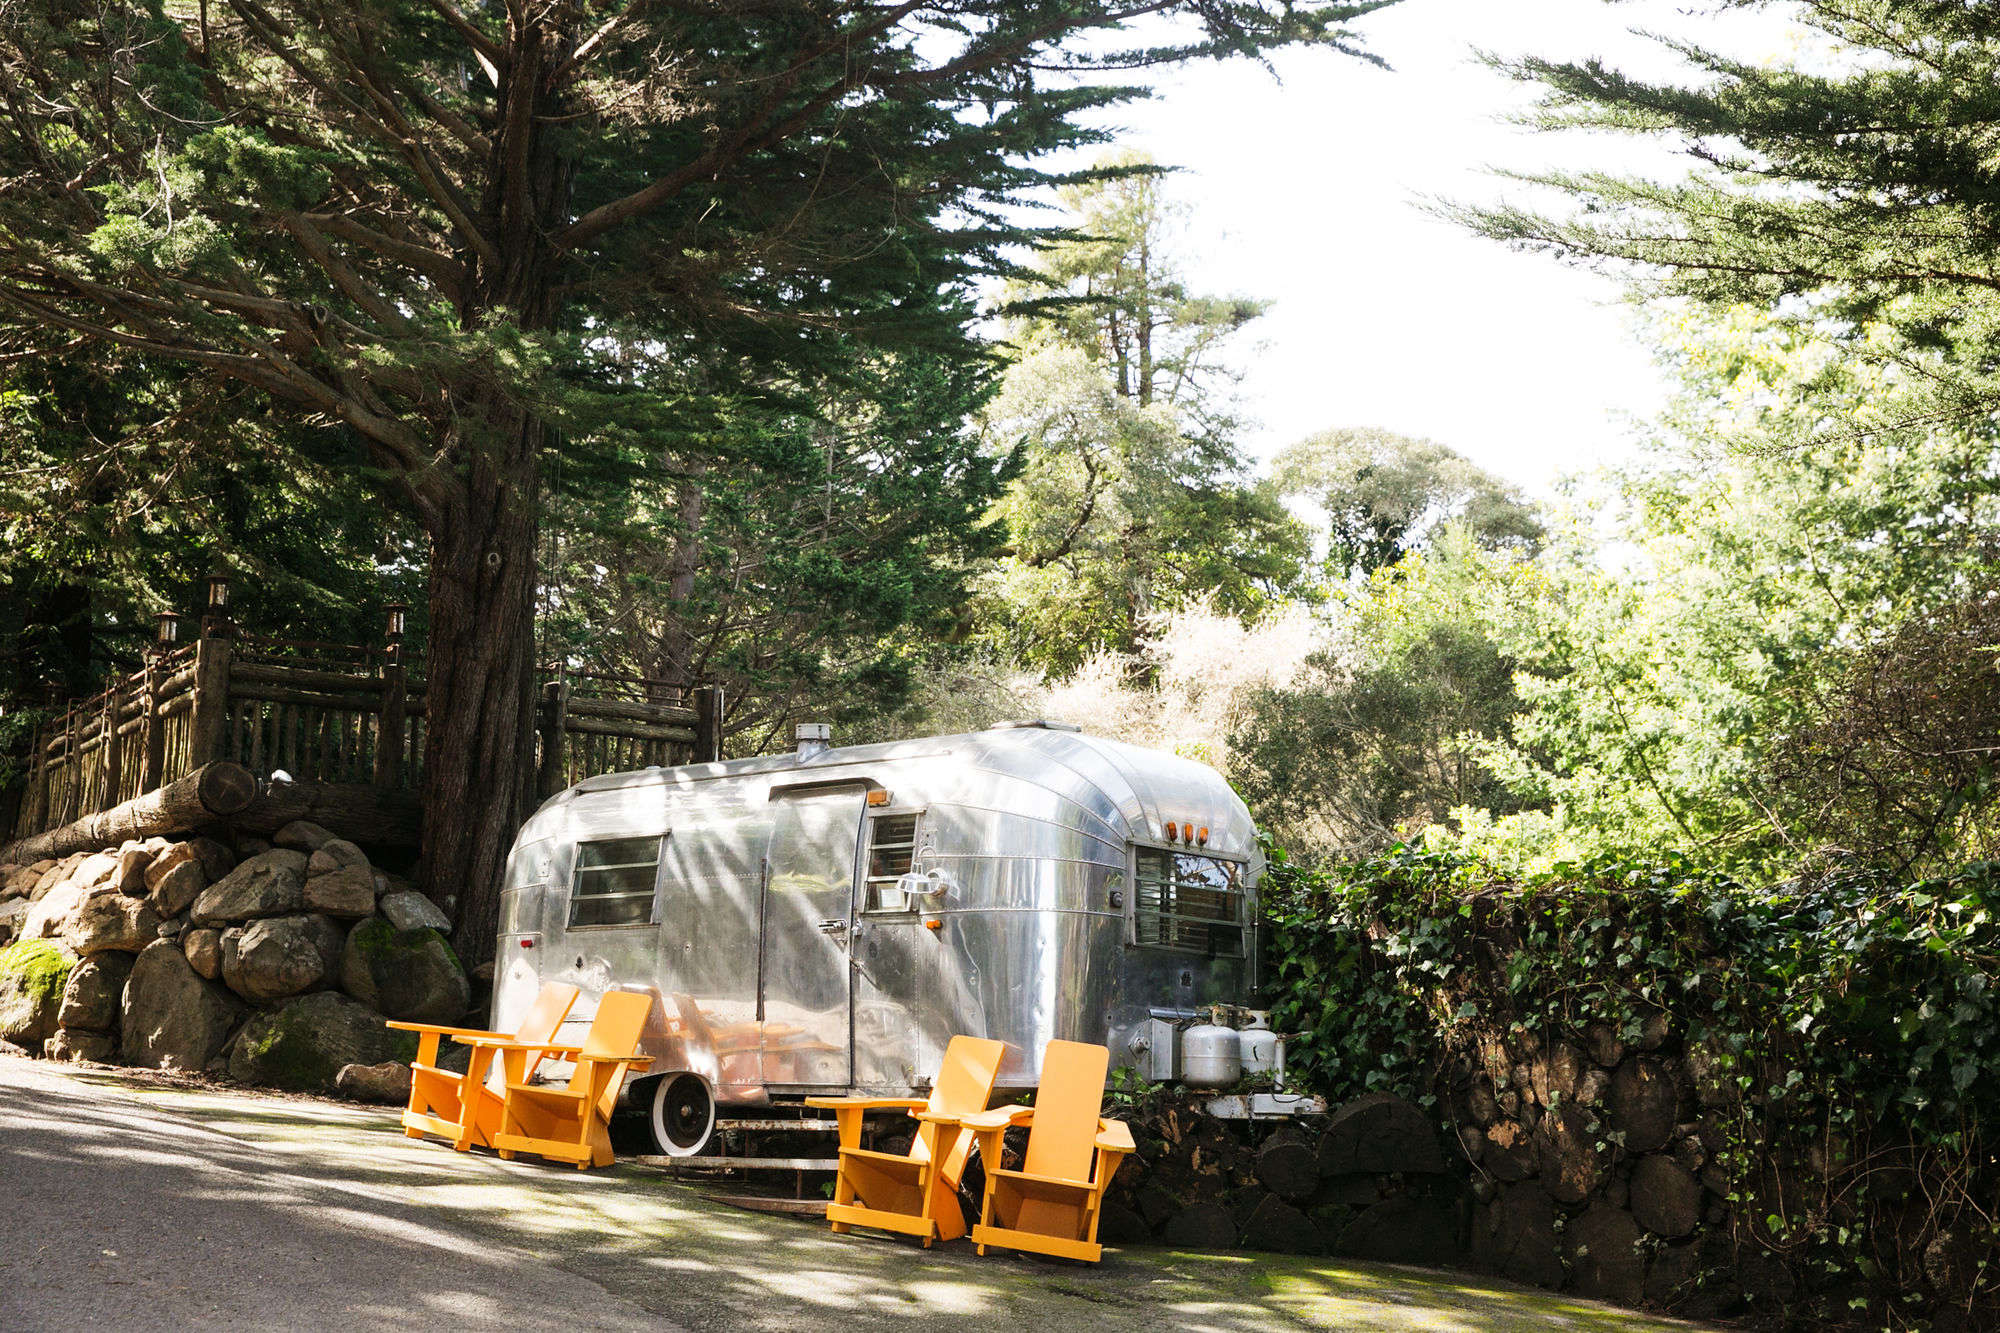 Mankas Inverness Lodge A 1900s Reborn In Northern California Vintage Airstream Wiring Diagram Remodelista Sourcebook For The Considered Home Bloglovin